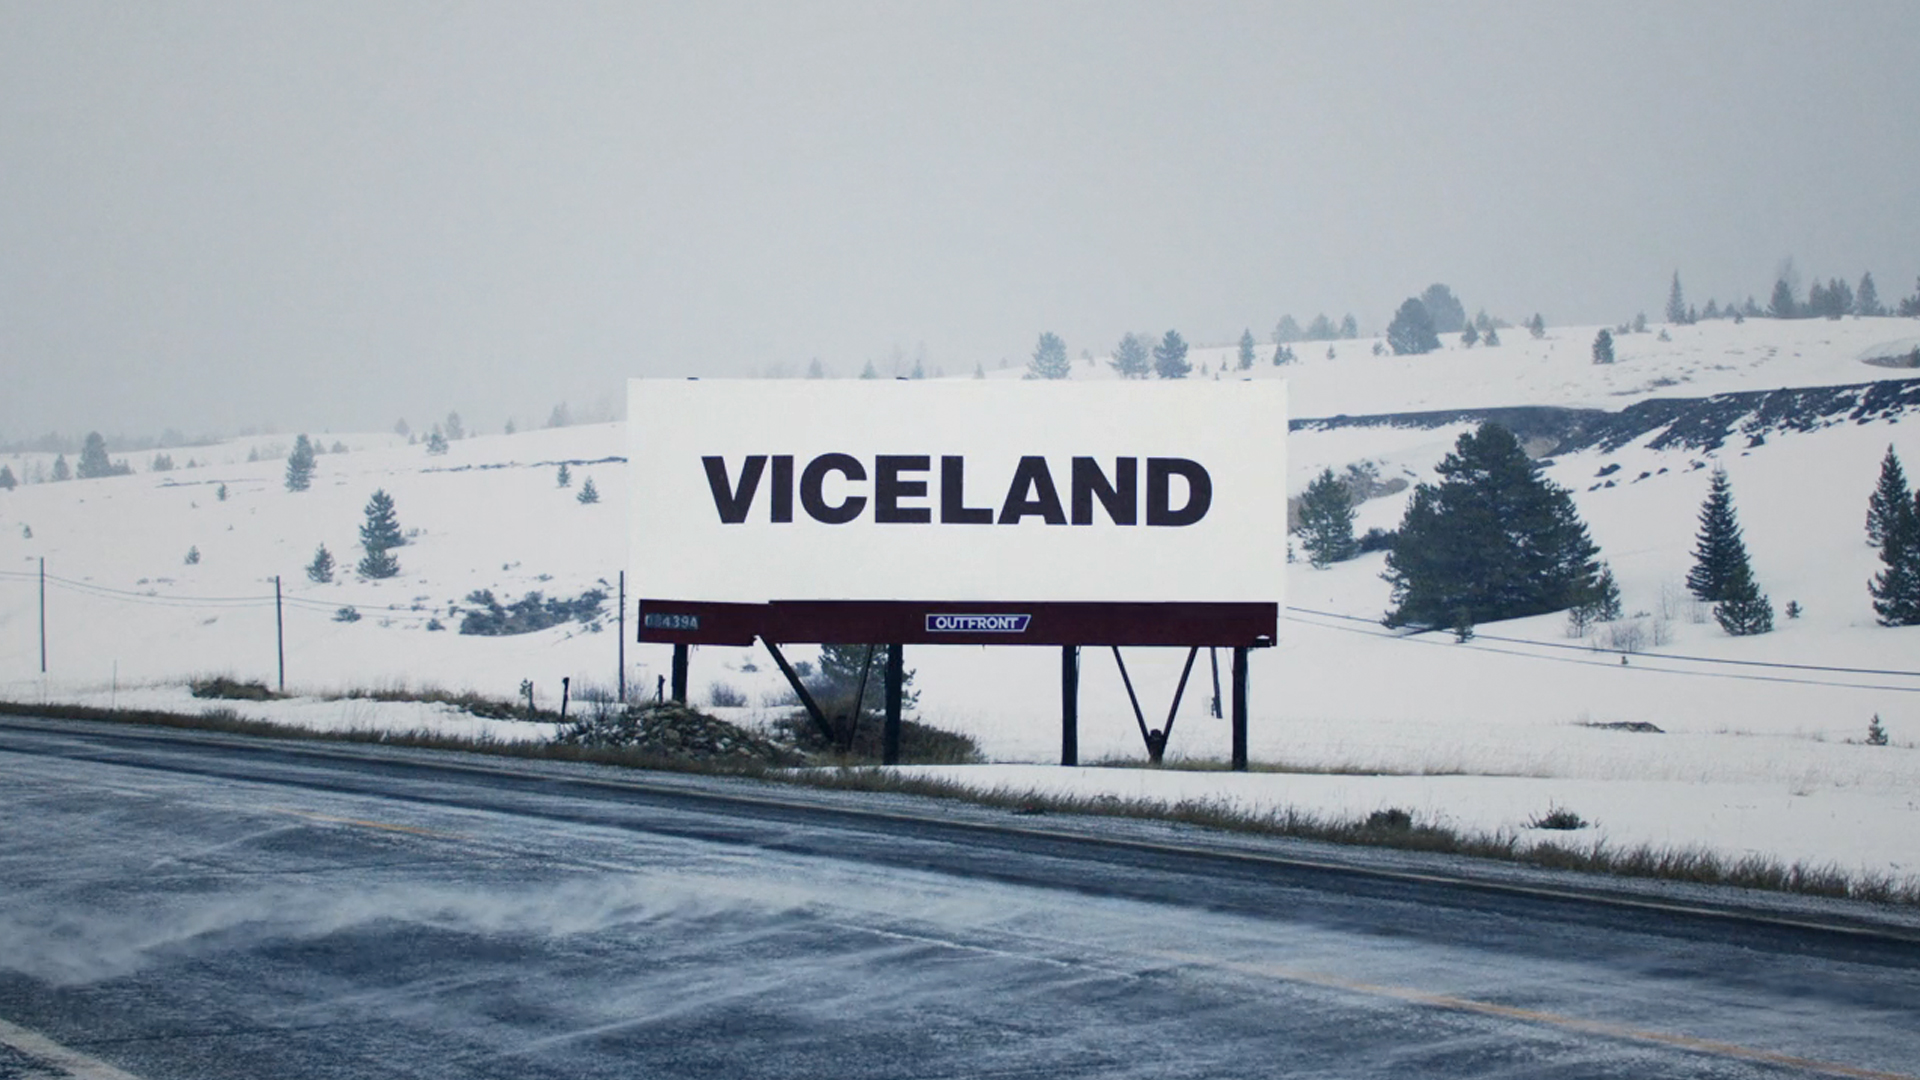 Viceland_Vernacular_Behavior_04.jpg